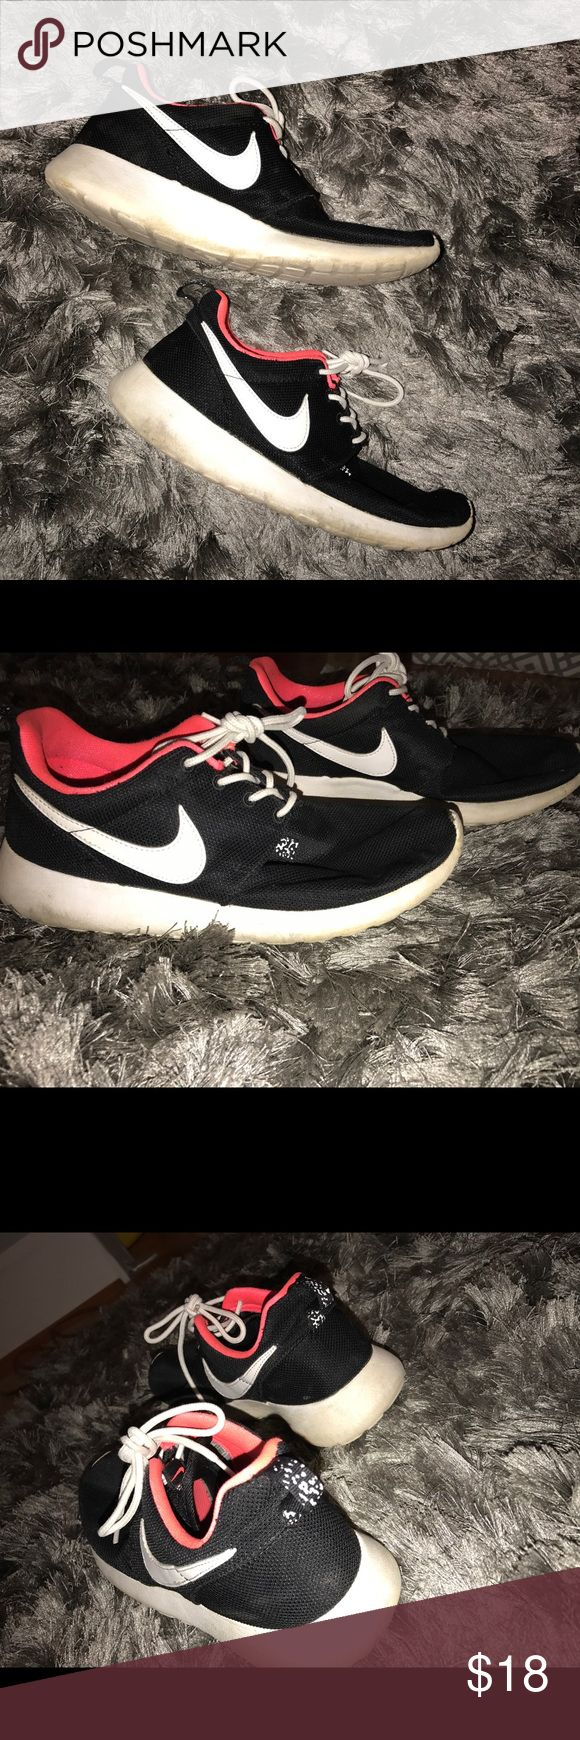 "Black Nike Roshe Runs Black and White Roshe Runs. They're a 7 ""youth,"" but women and youth sizes are the same. They're dirty. If you took the time to clean them they would look fine. Negotiable in price. Send me an offer. :) Nike Shoes Sneakers"